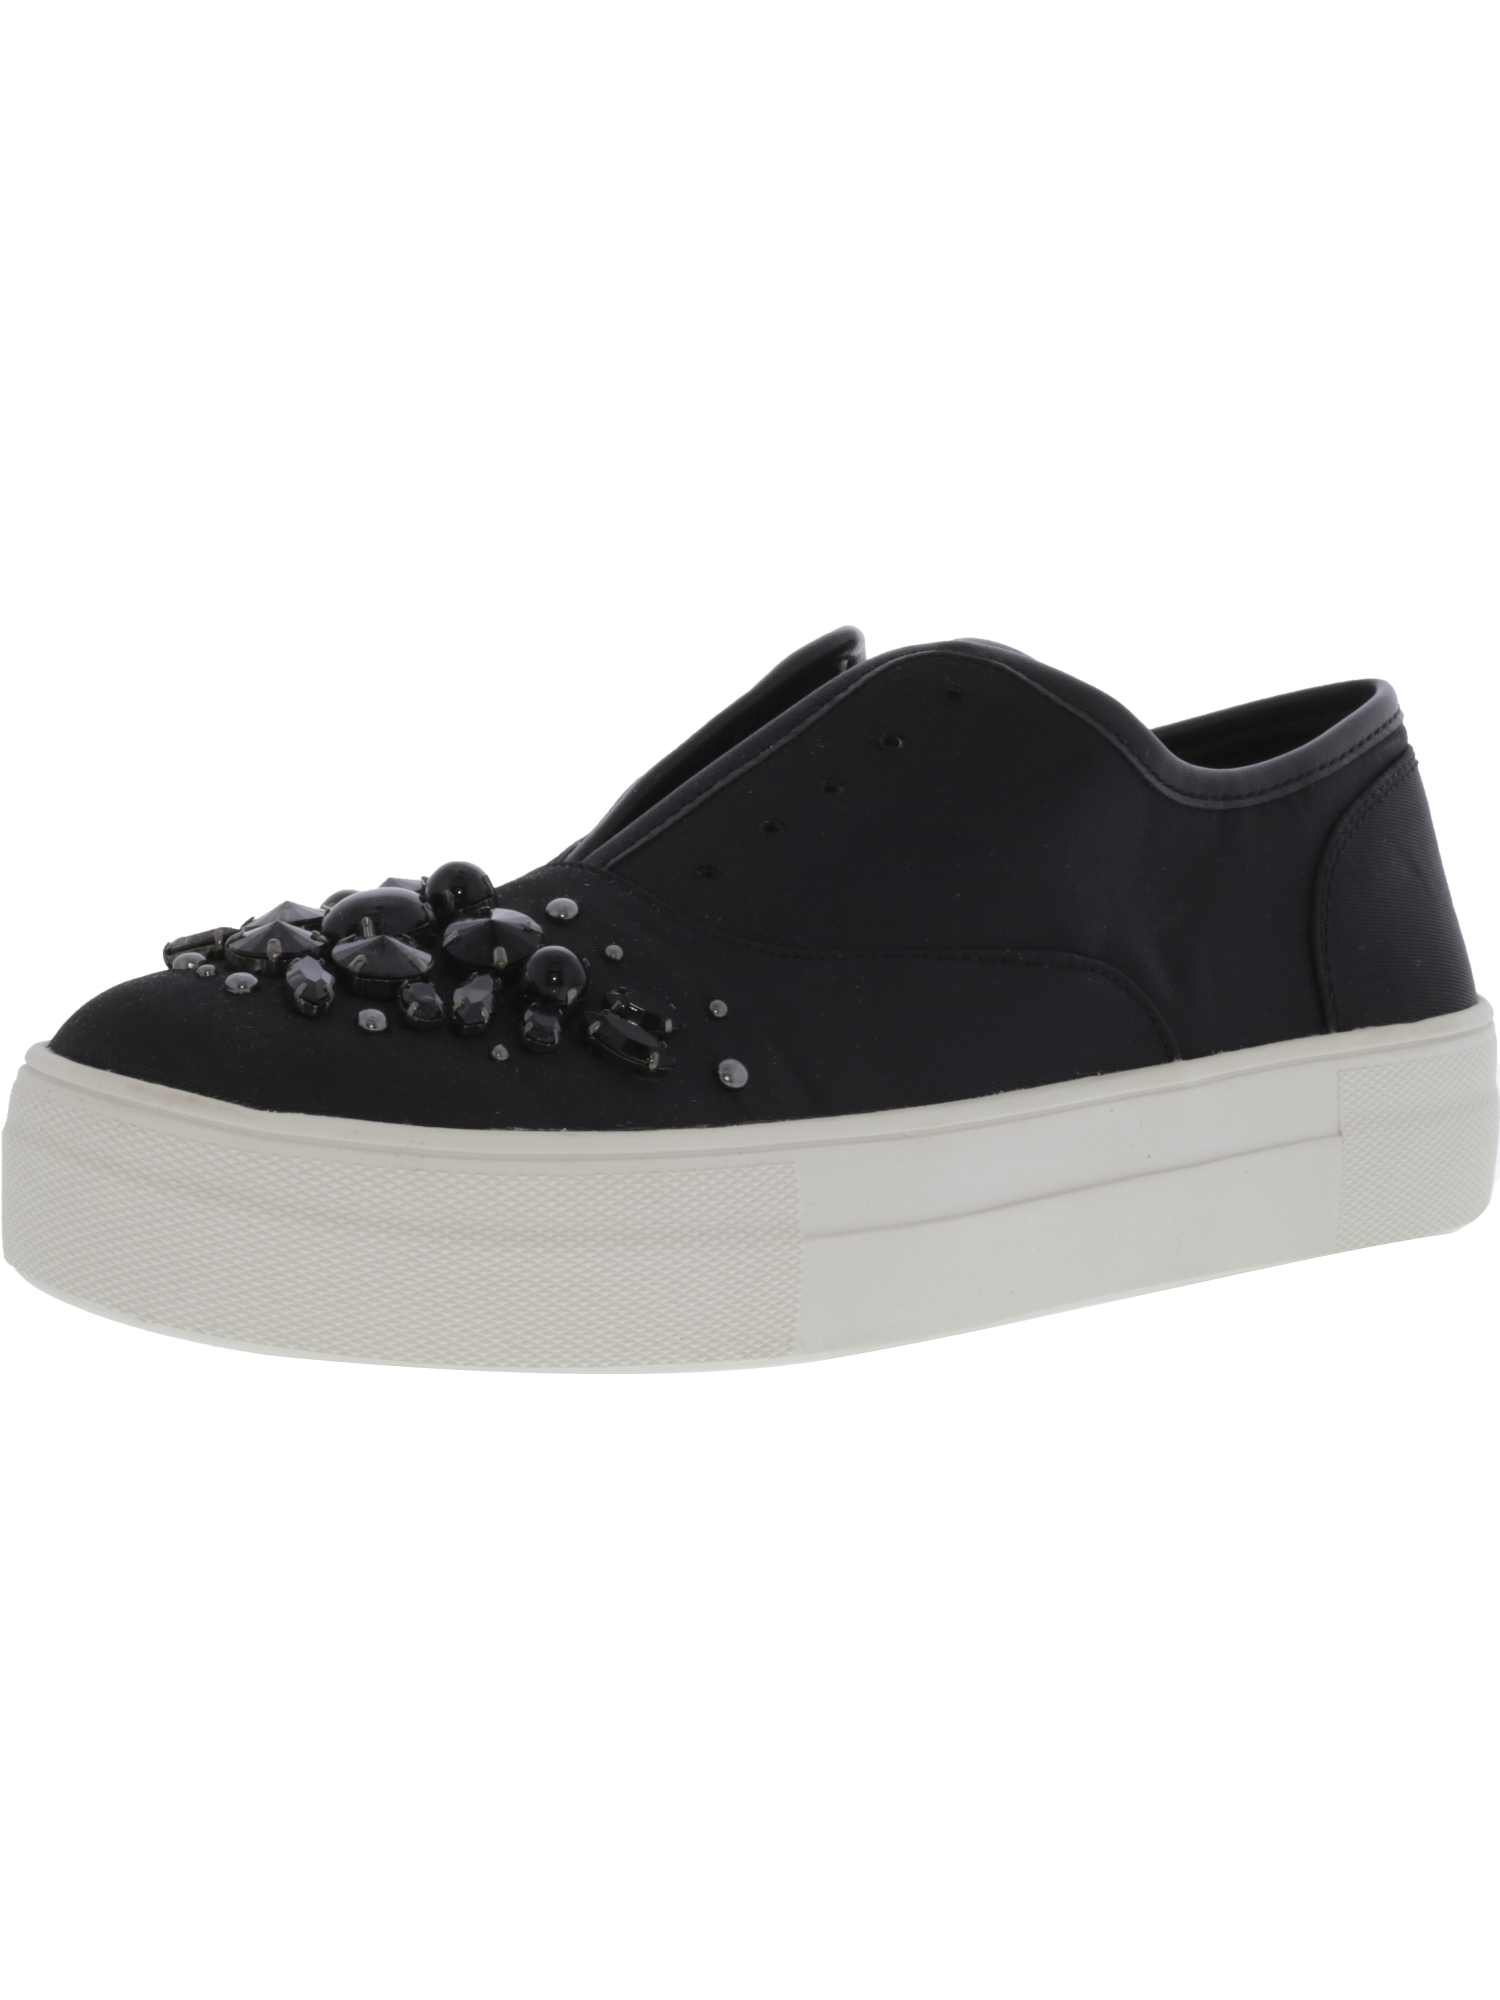 Steve-Madden-Women-039-s-Passion-Ankle-High-Fabric-Slip-On-Shoes thumbnail 5